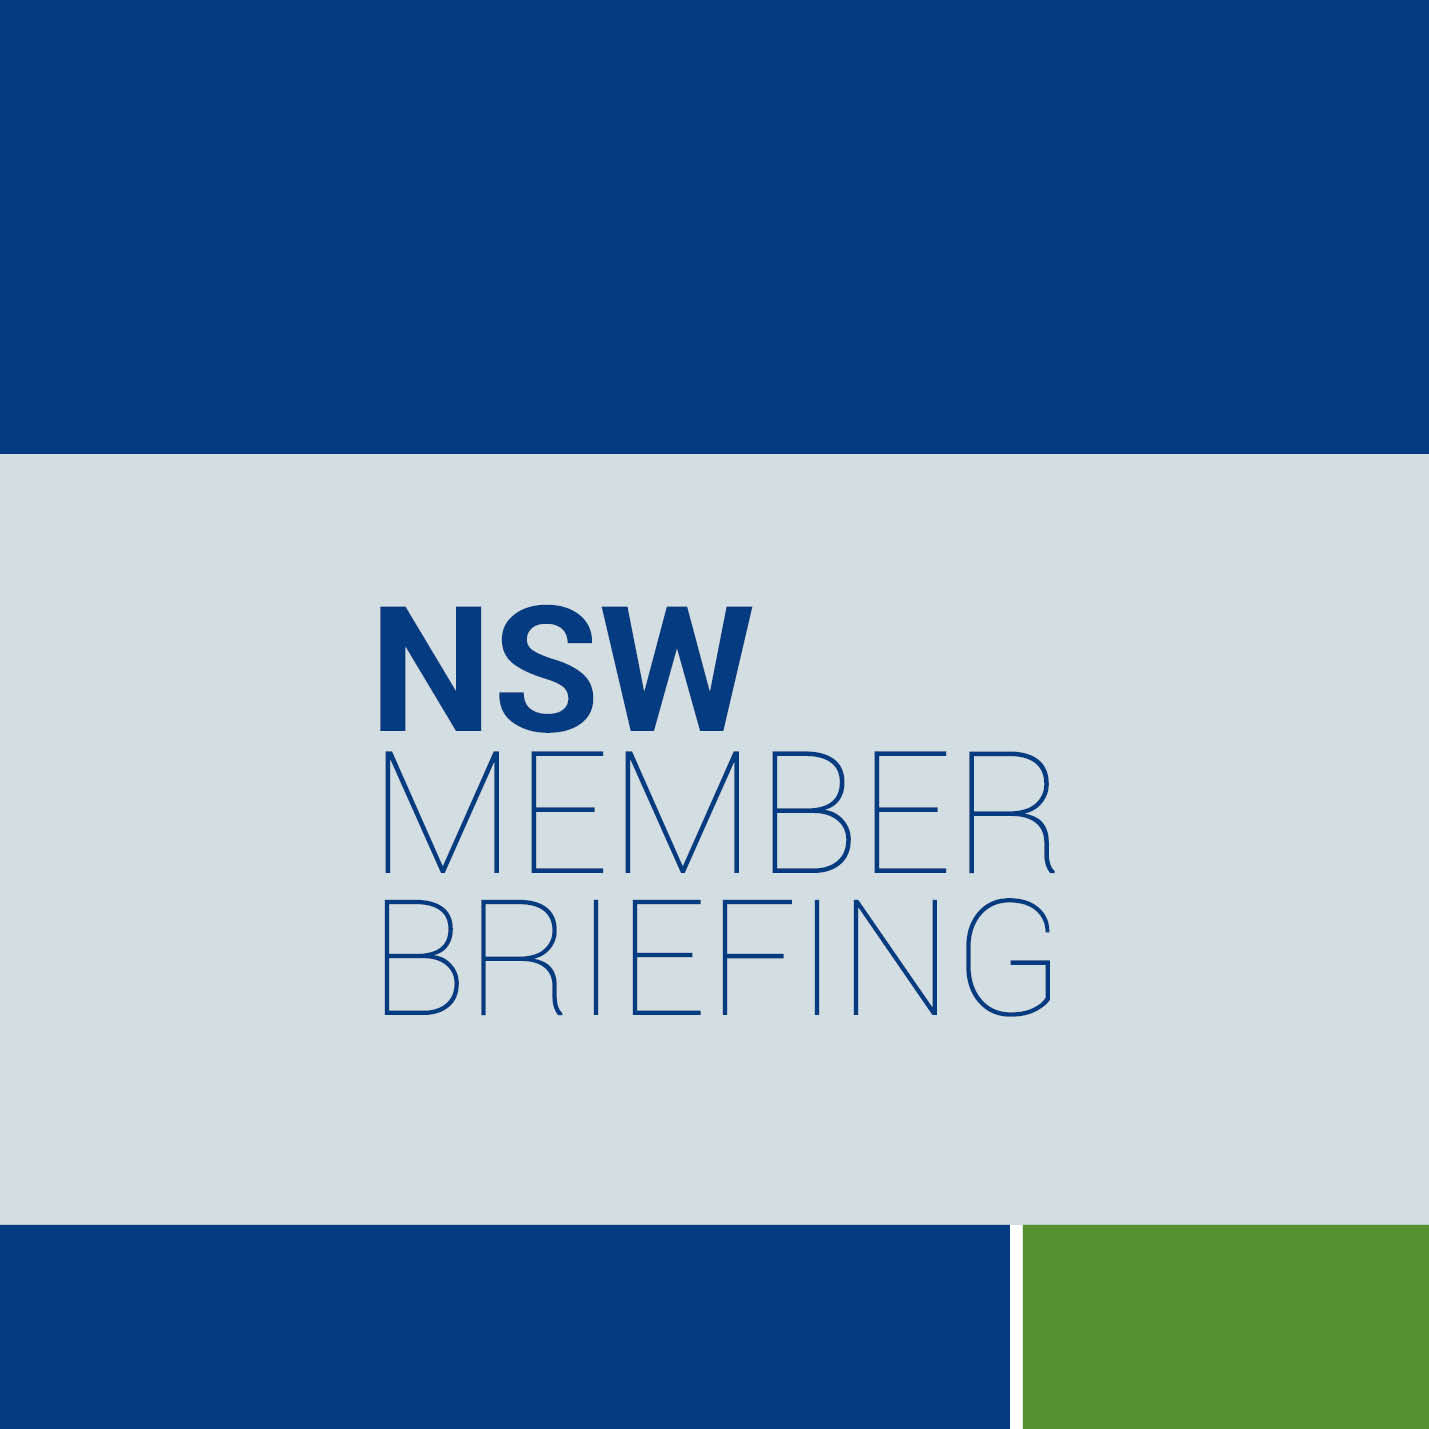 NSW Member Briefing Webtile